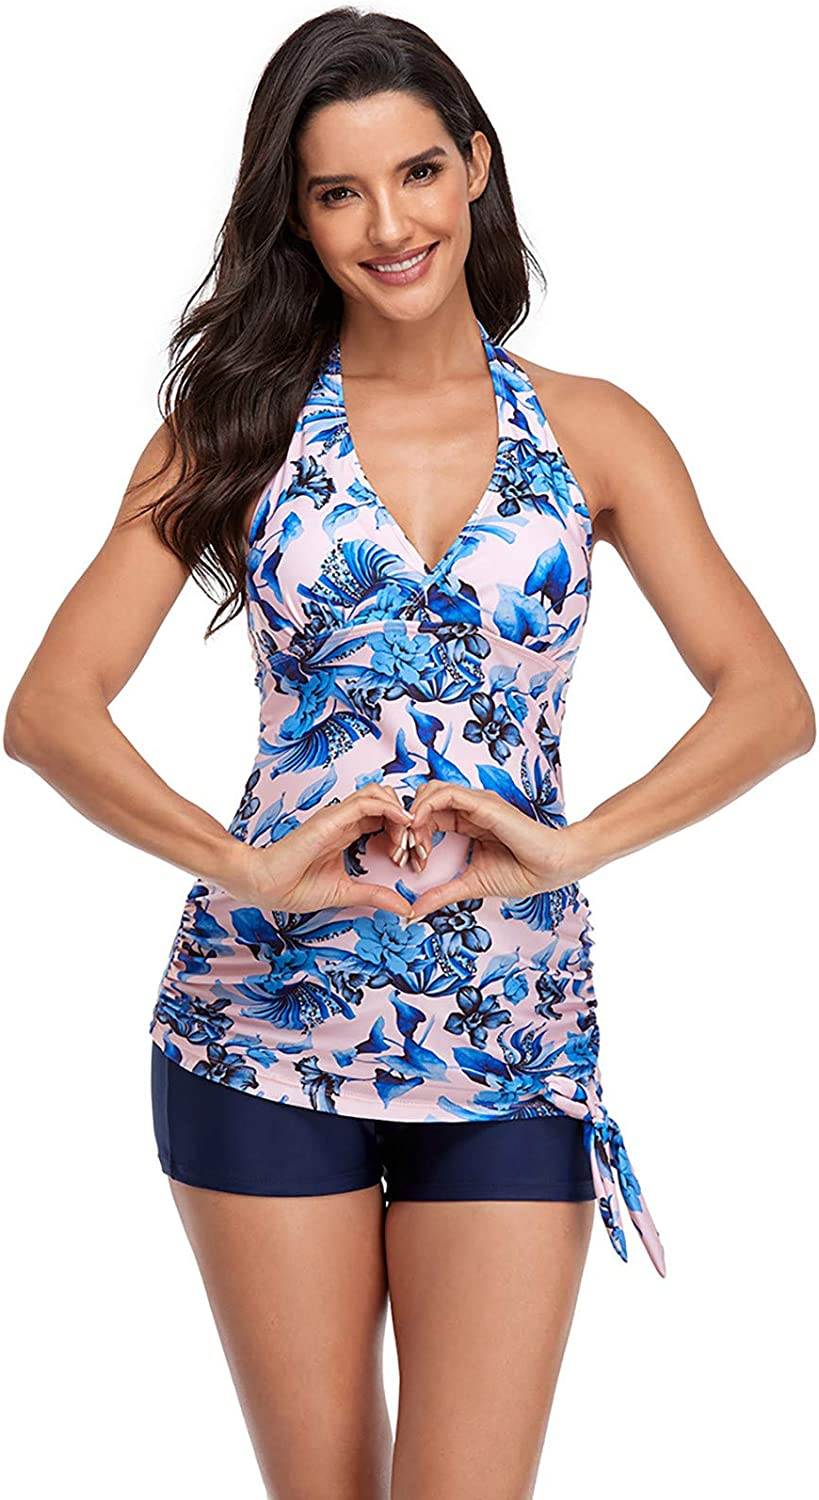 Maternity Tankini Swimsuit,Floral Halter Sexy Casual Plus Size Bathing Suit Swimwear Swim Bottoms for Mom Beach Summer